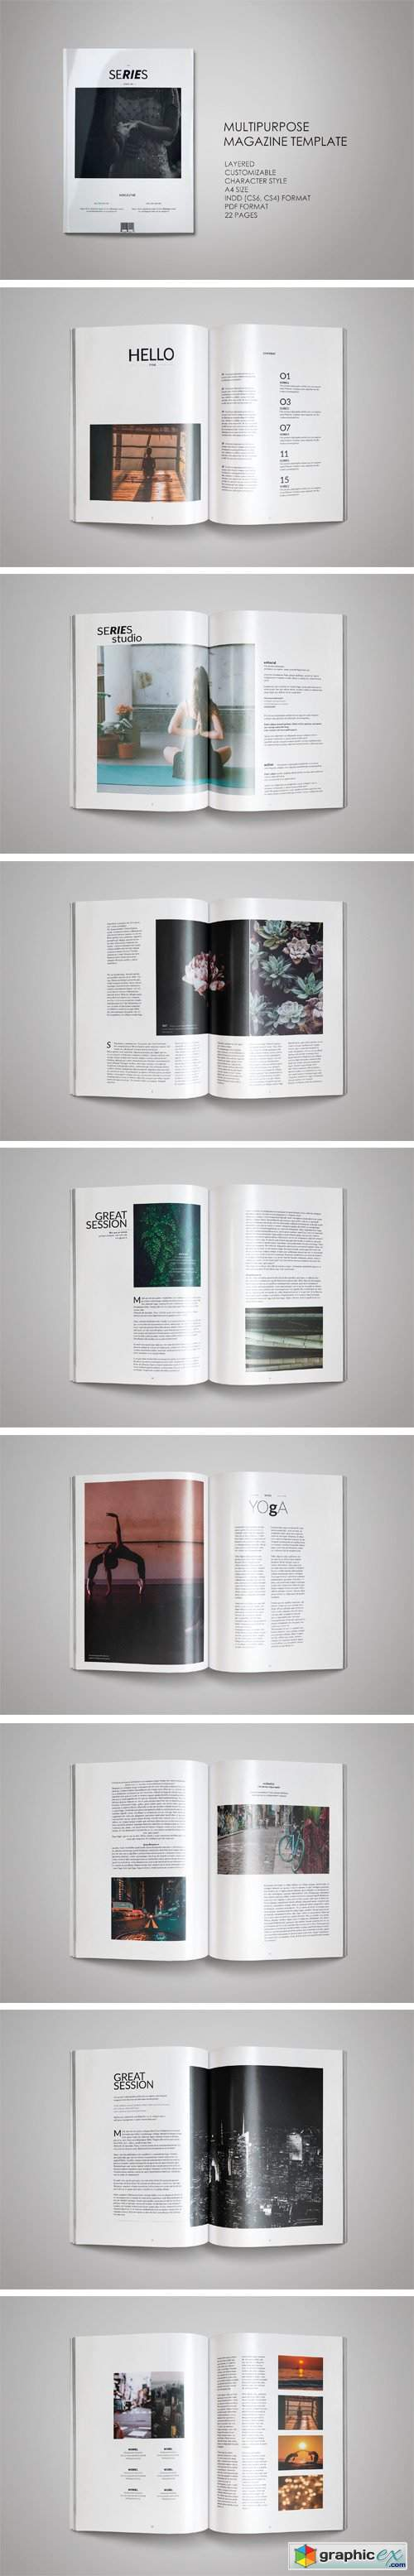 Clean Fashioned Magazine Template